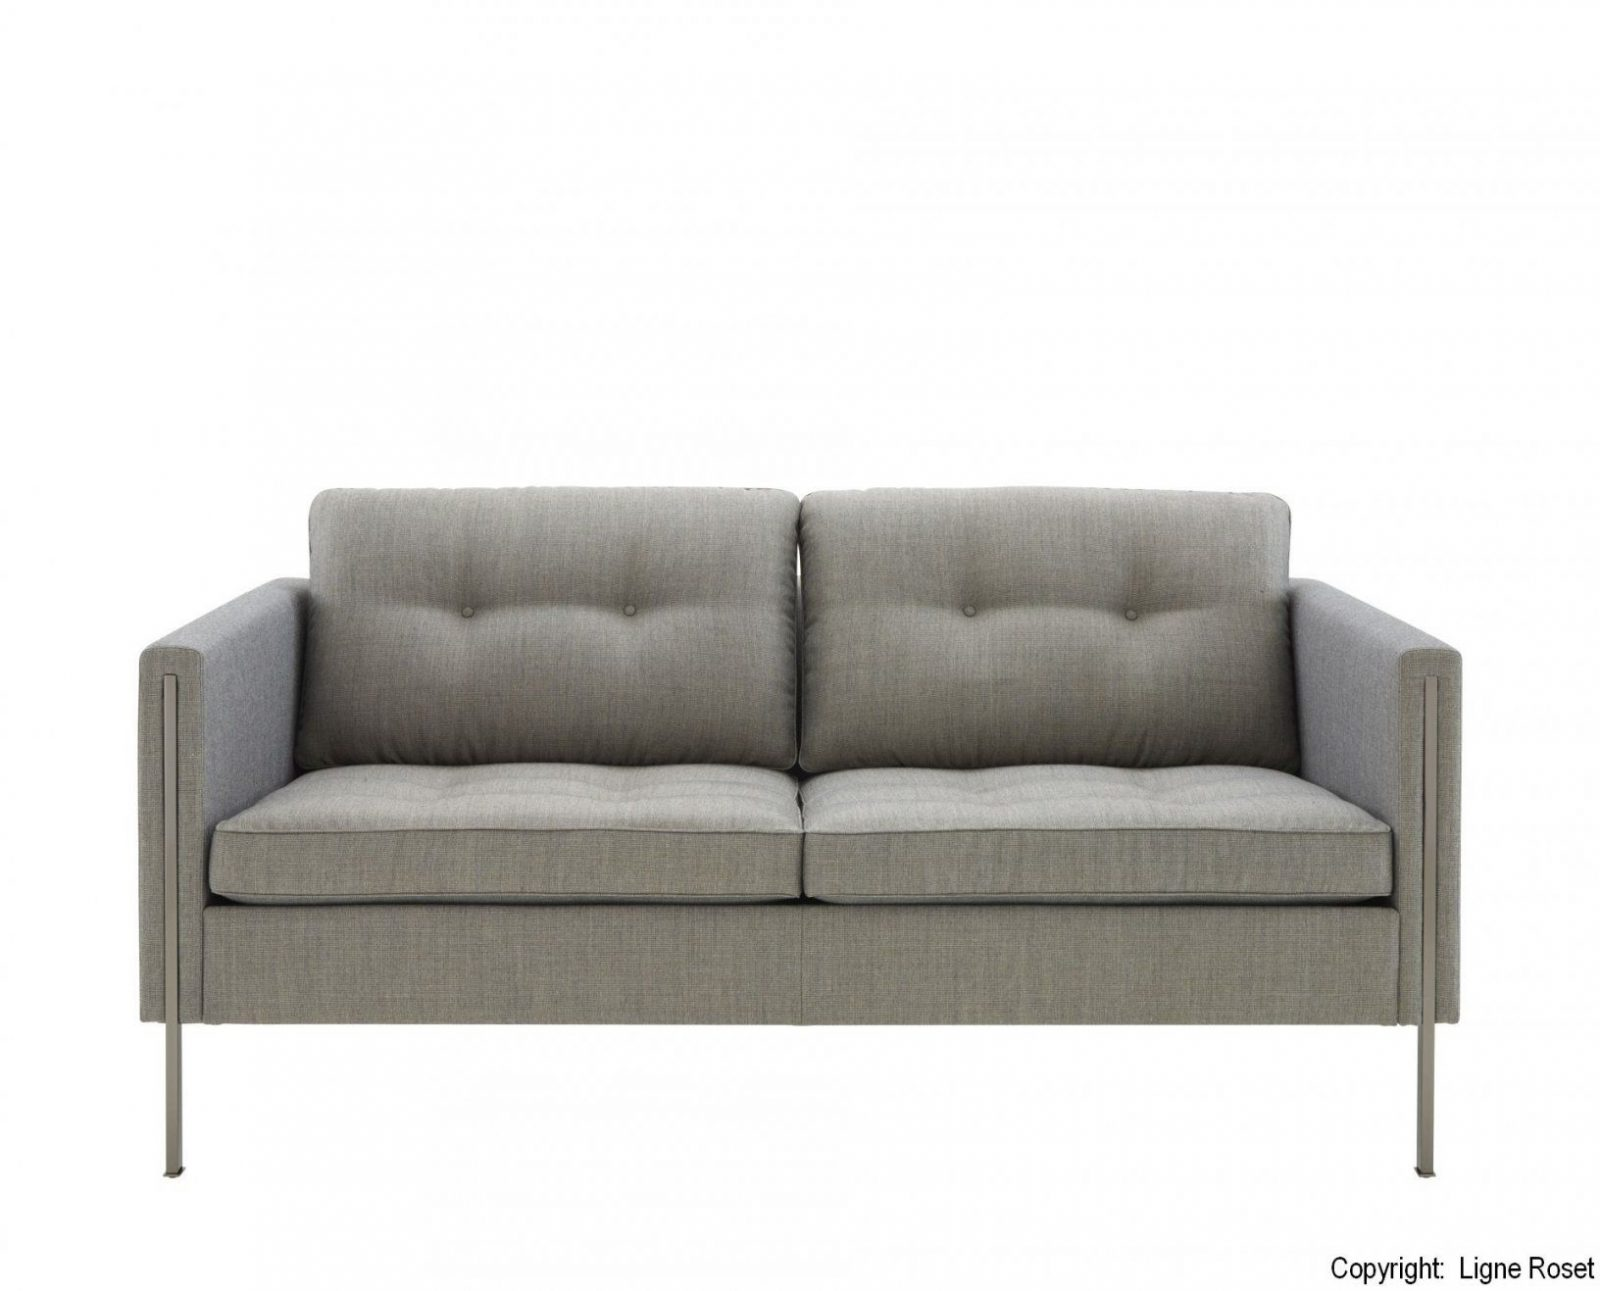 Image Result For Dunkelgraues Sofa Welche